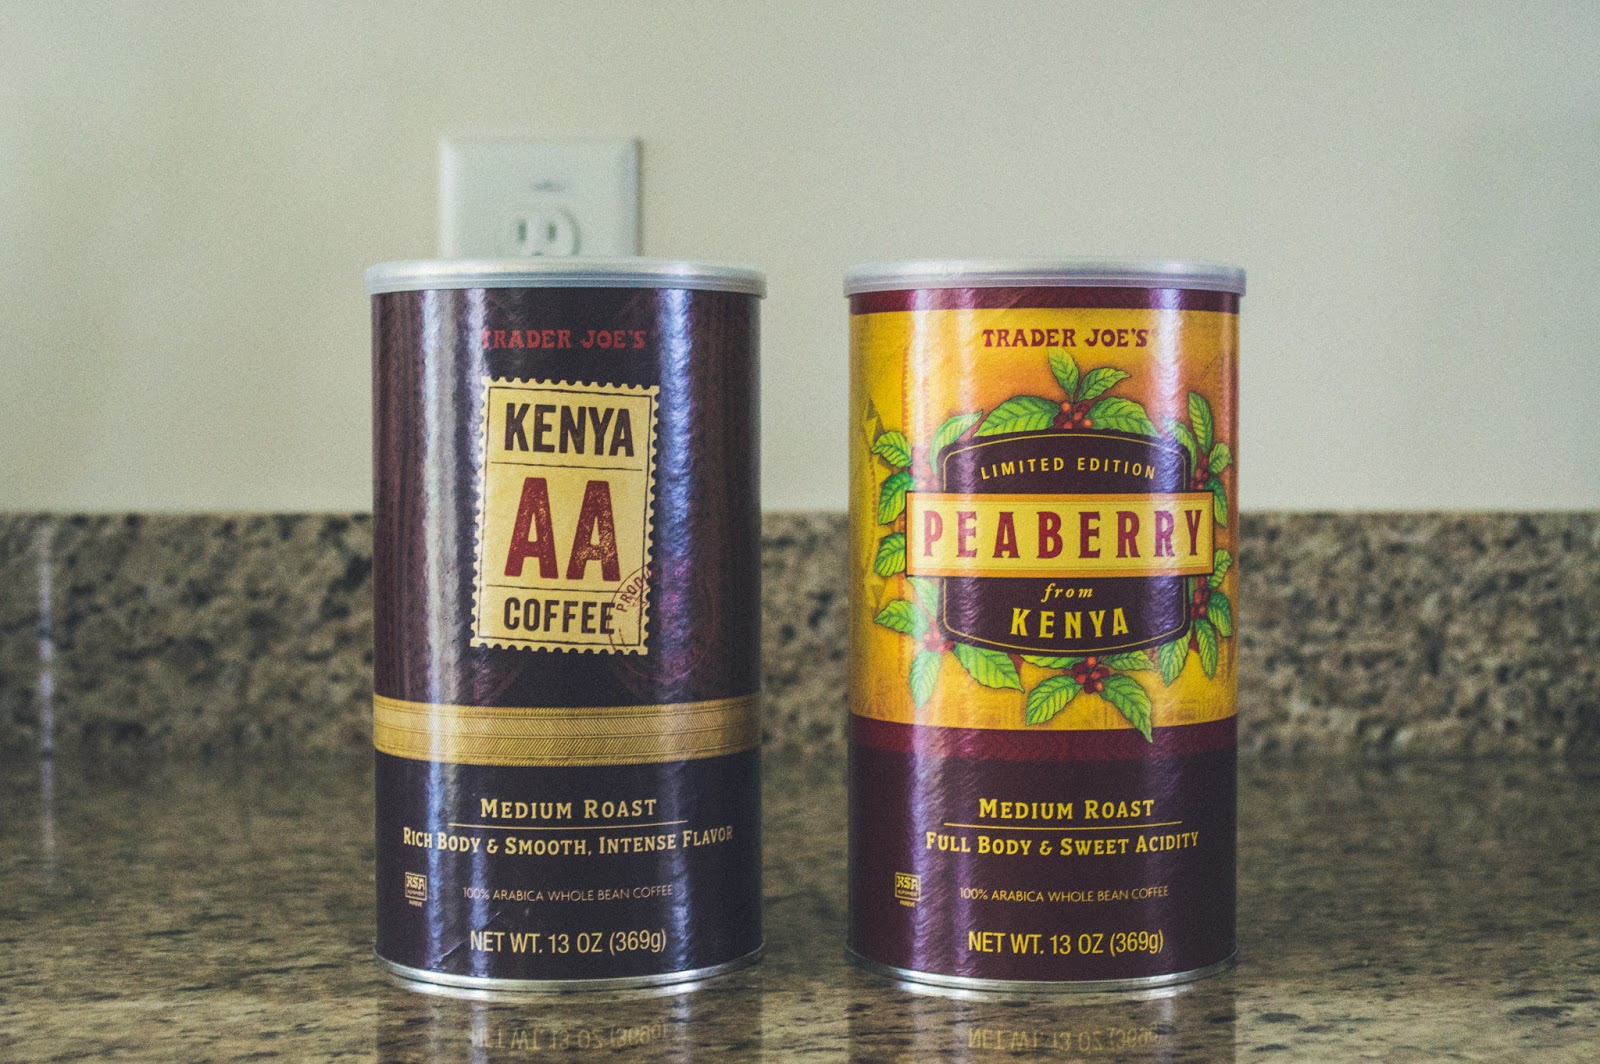 Trader Joe's Coffee: Kenya AA Medium Roast & Kenya Peaberry Medium Roast